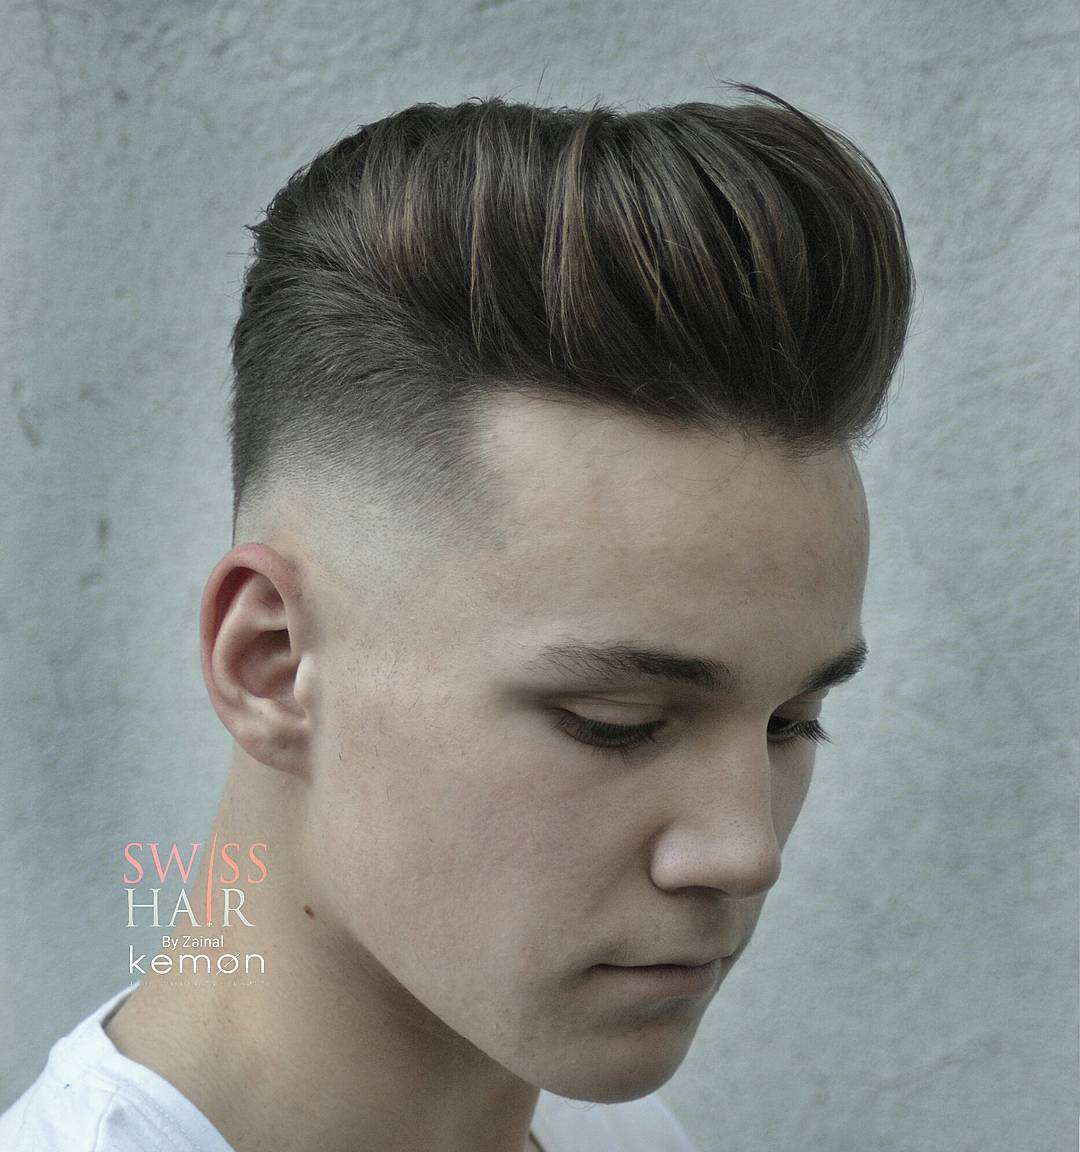 Hair Styles Boys Stunning Hairstyles For College Guys25 New Hair Looks To Copy In 2017